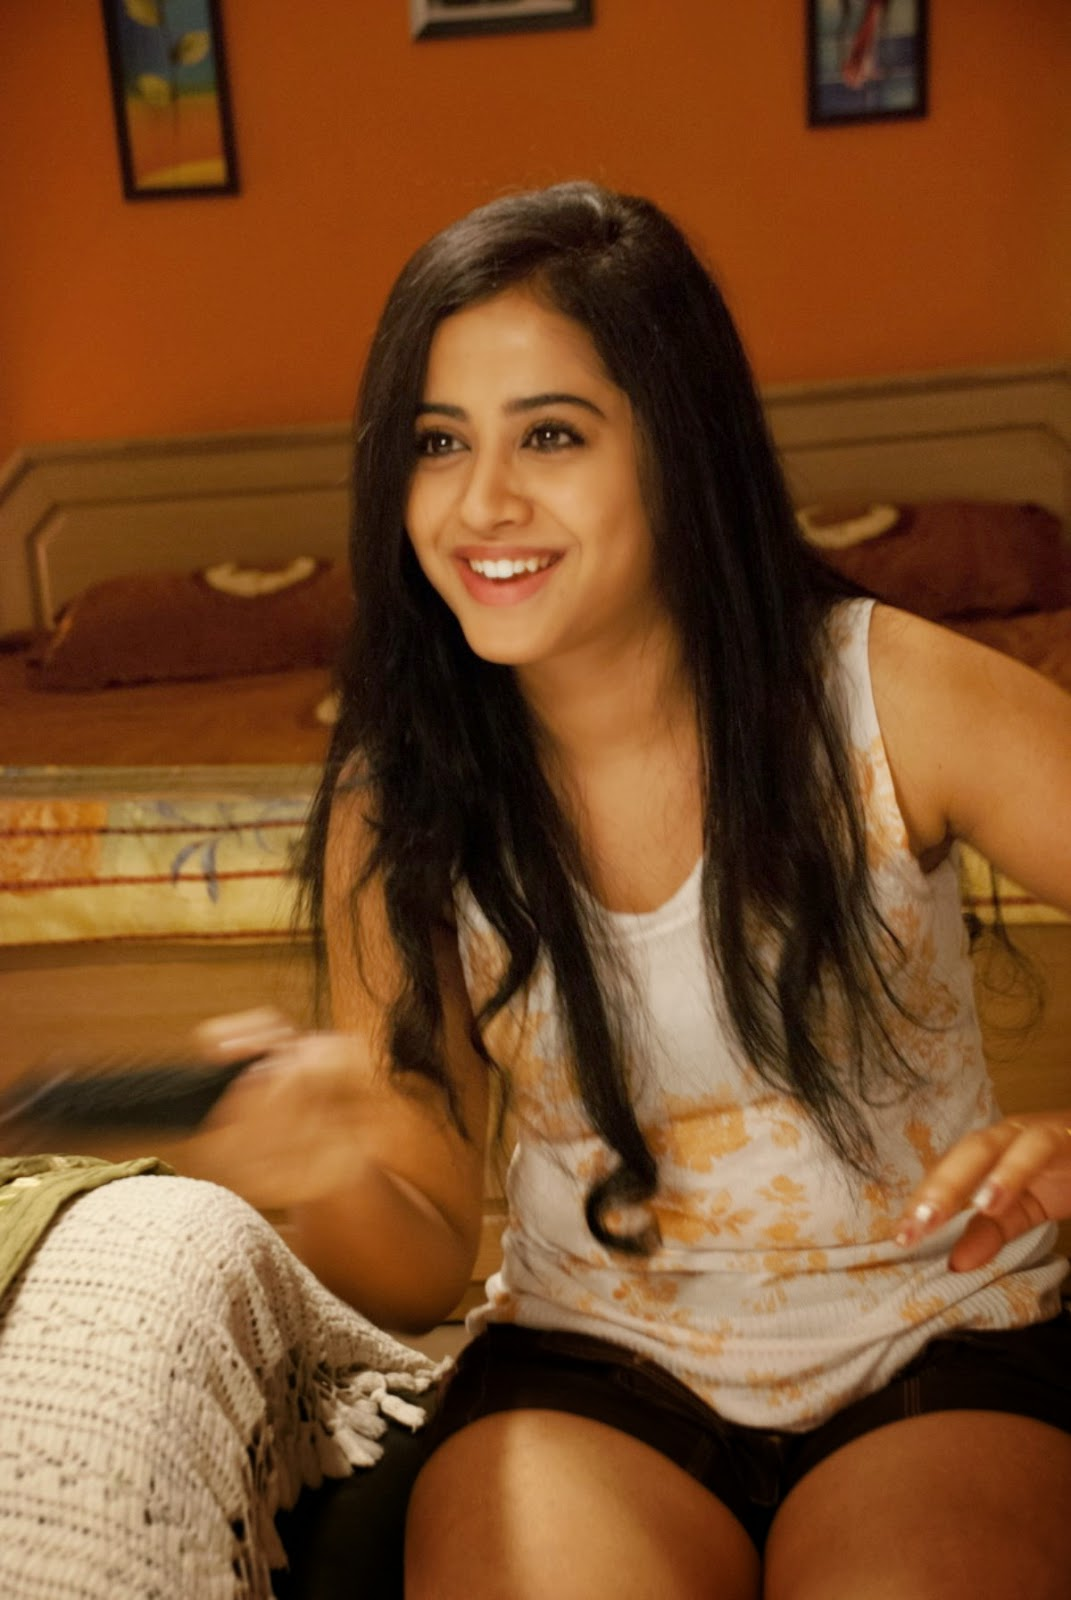 Swati Dixit Hottest All Time Pics | Hot Celebrity Photos